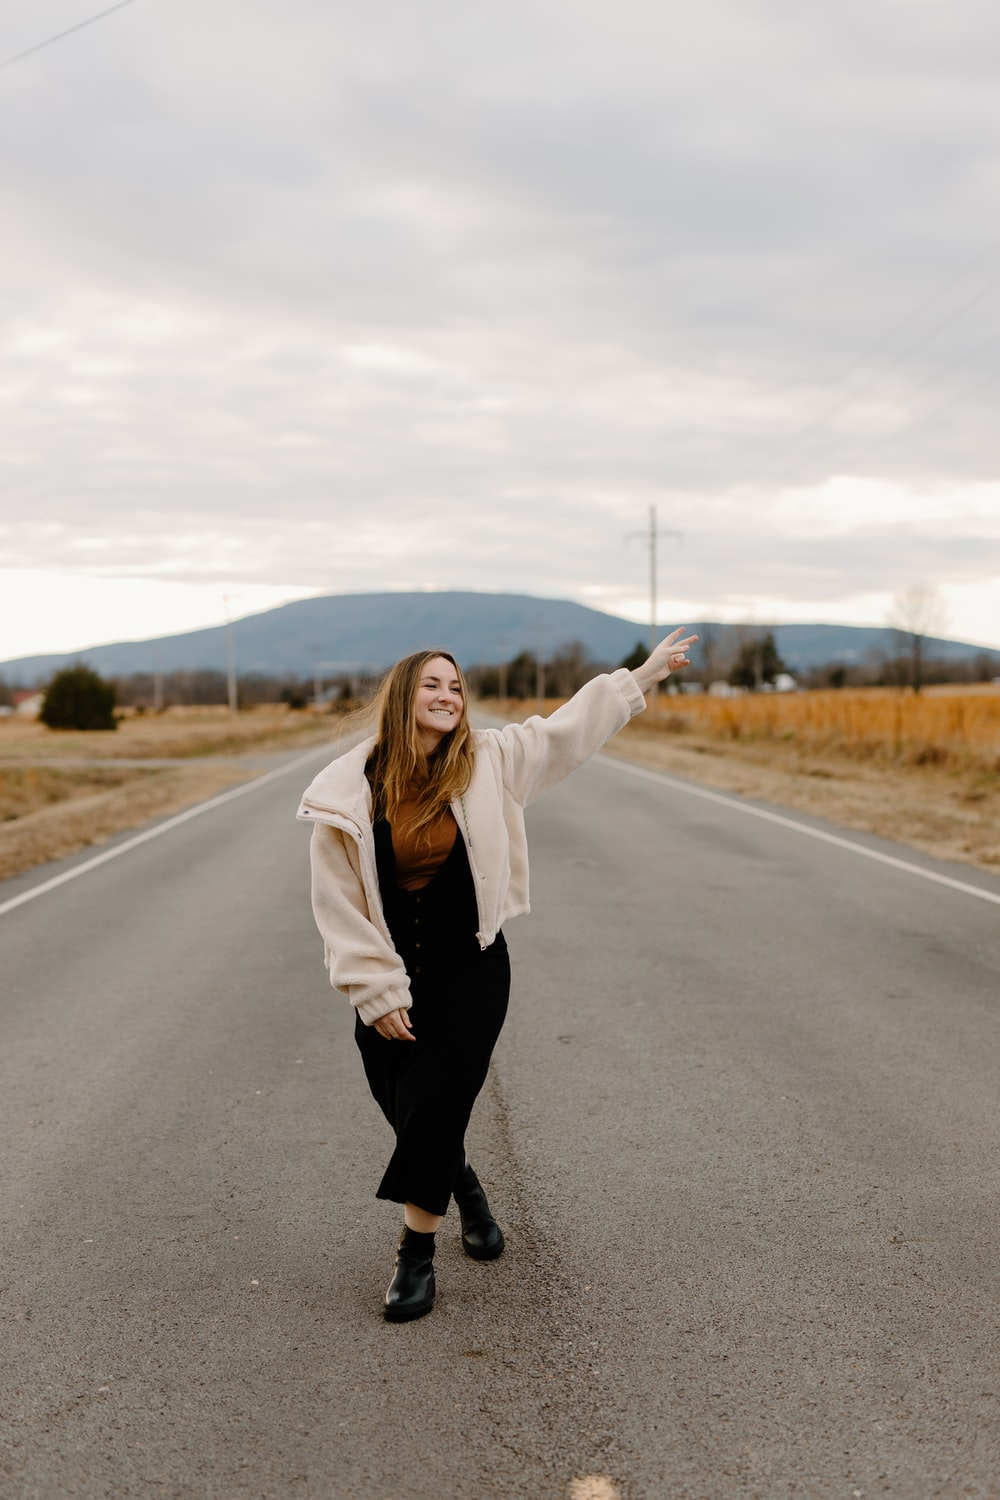 woman in white coat and black pants standing on road during daytime